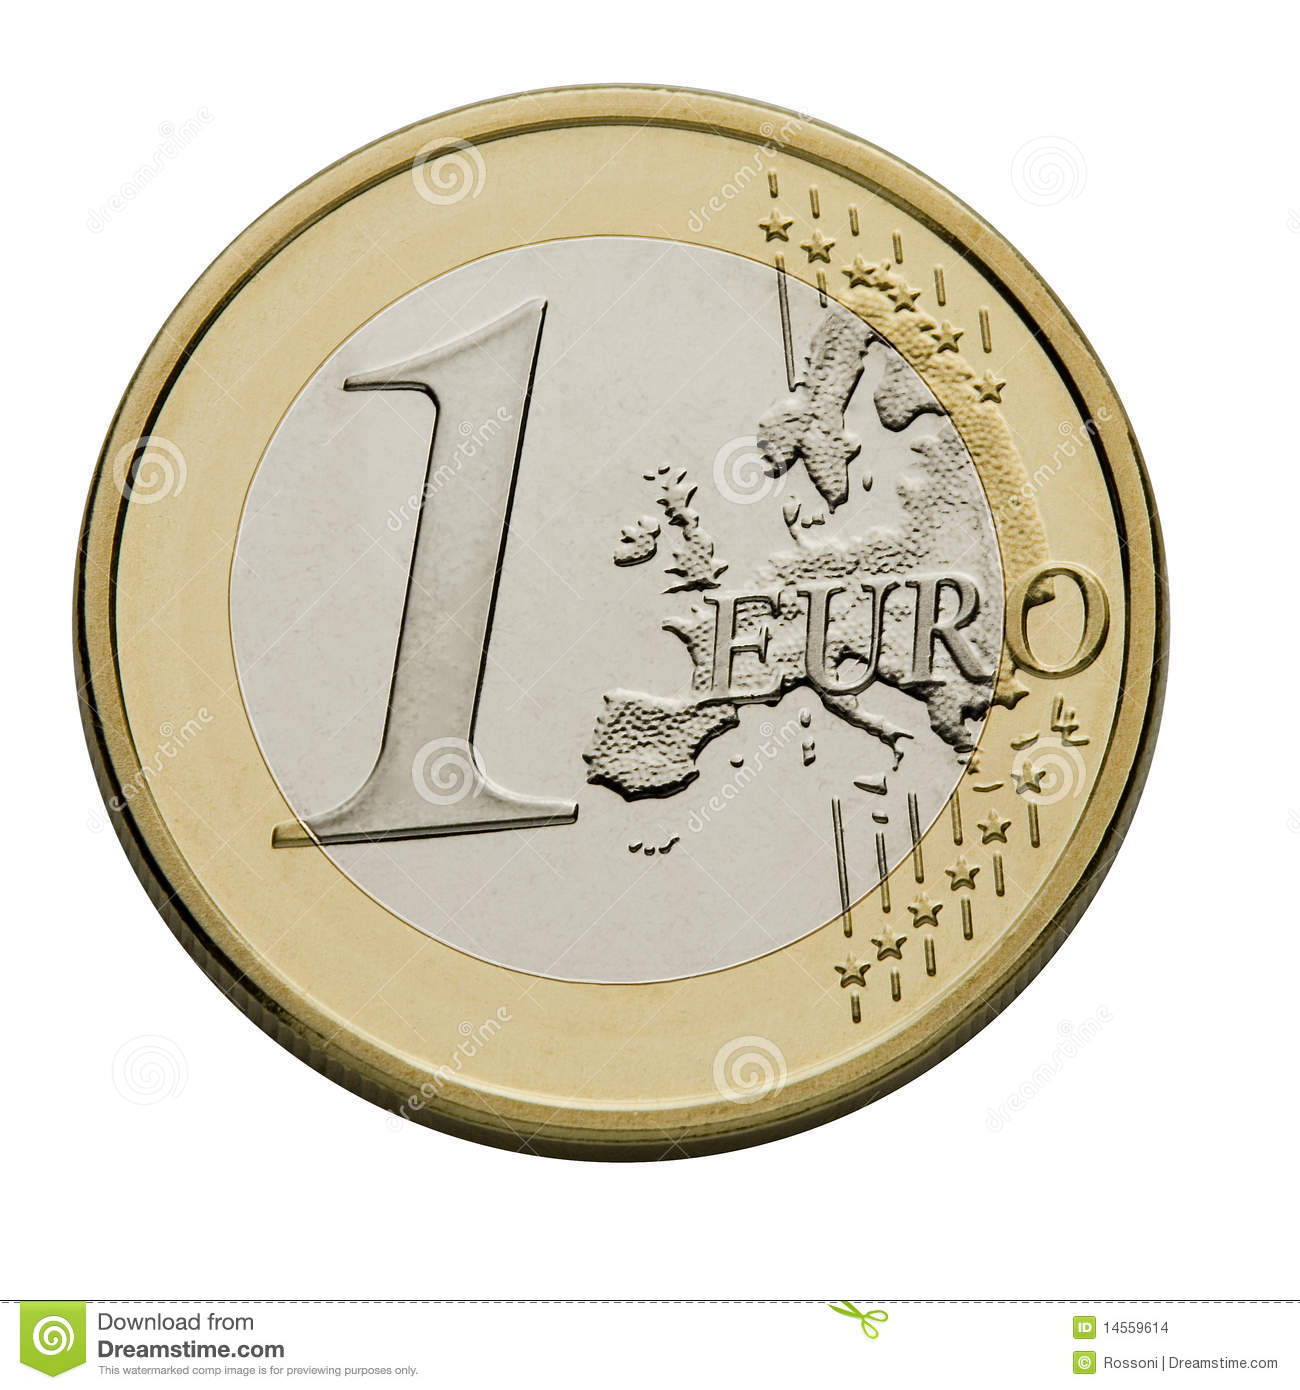 an introduction to a single currency in european union European single currency demonstrates the  west african monetary union (wamu) to create a single currency in all fifteen ecowas member states in 2020 after three  of the introduction of a single currency in member countries of the west african monetary zone (wamz.